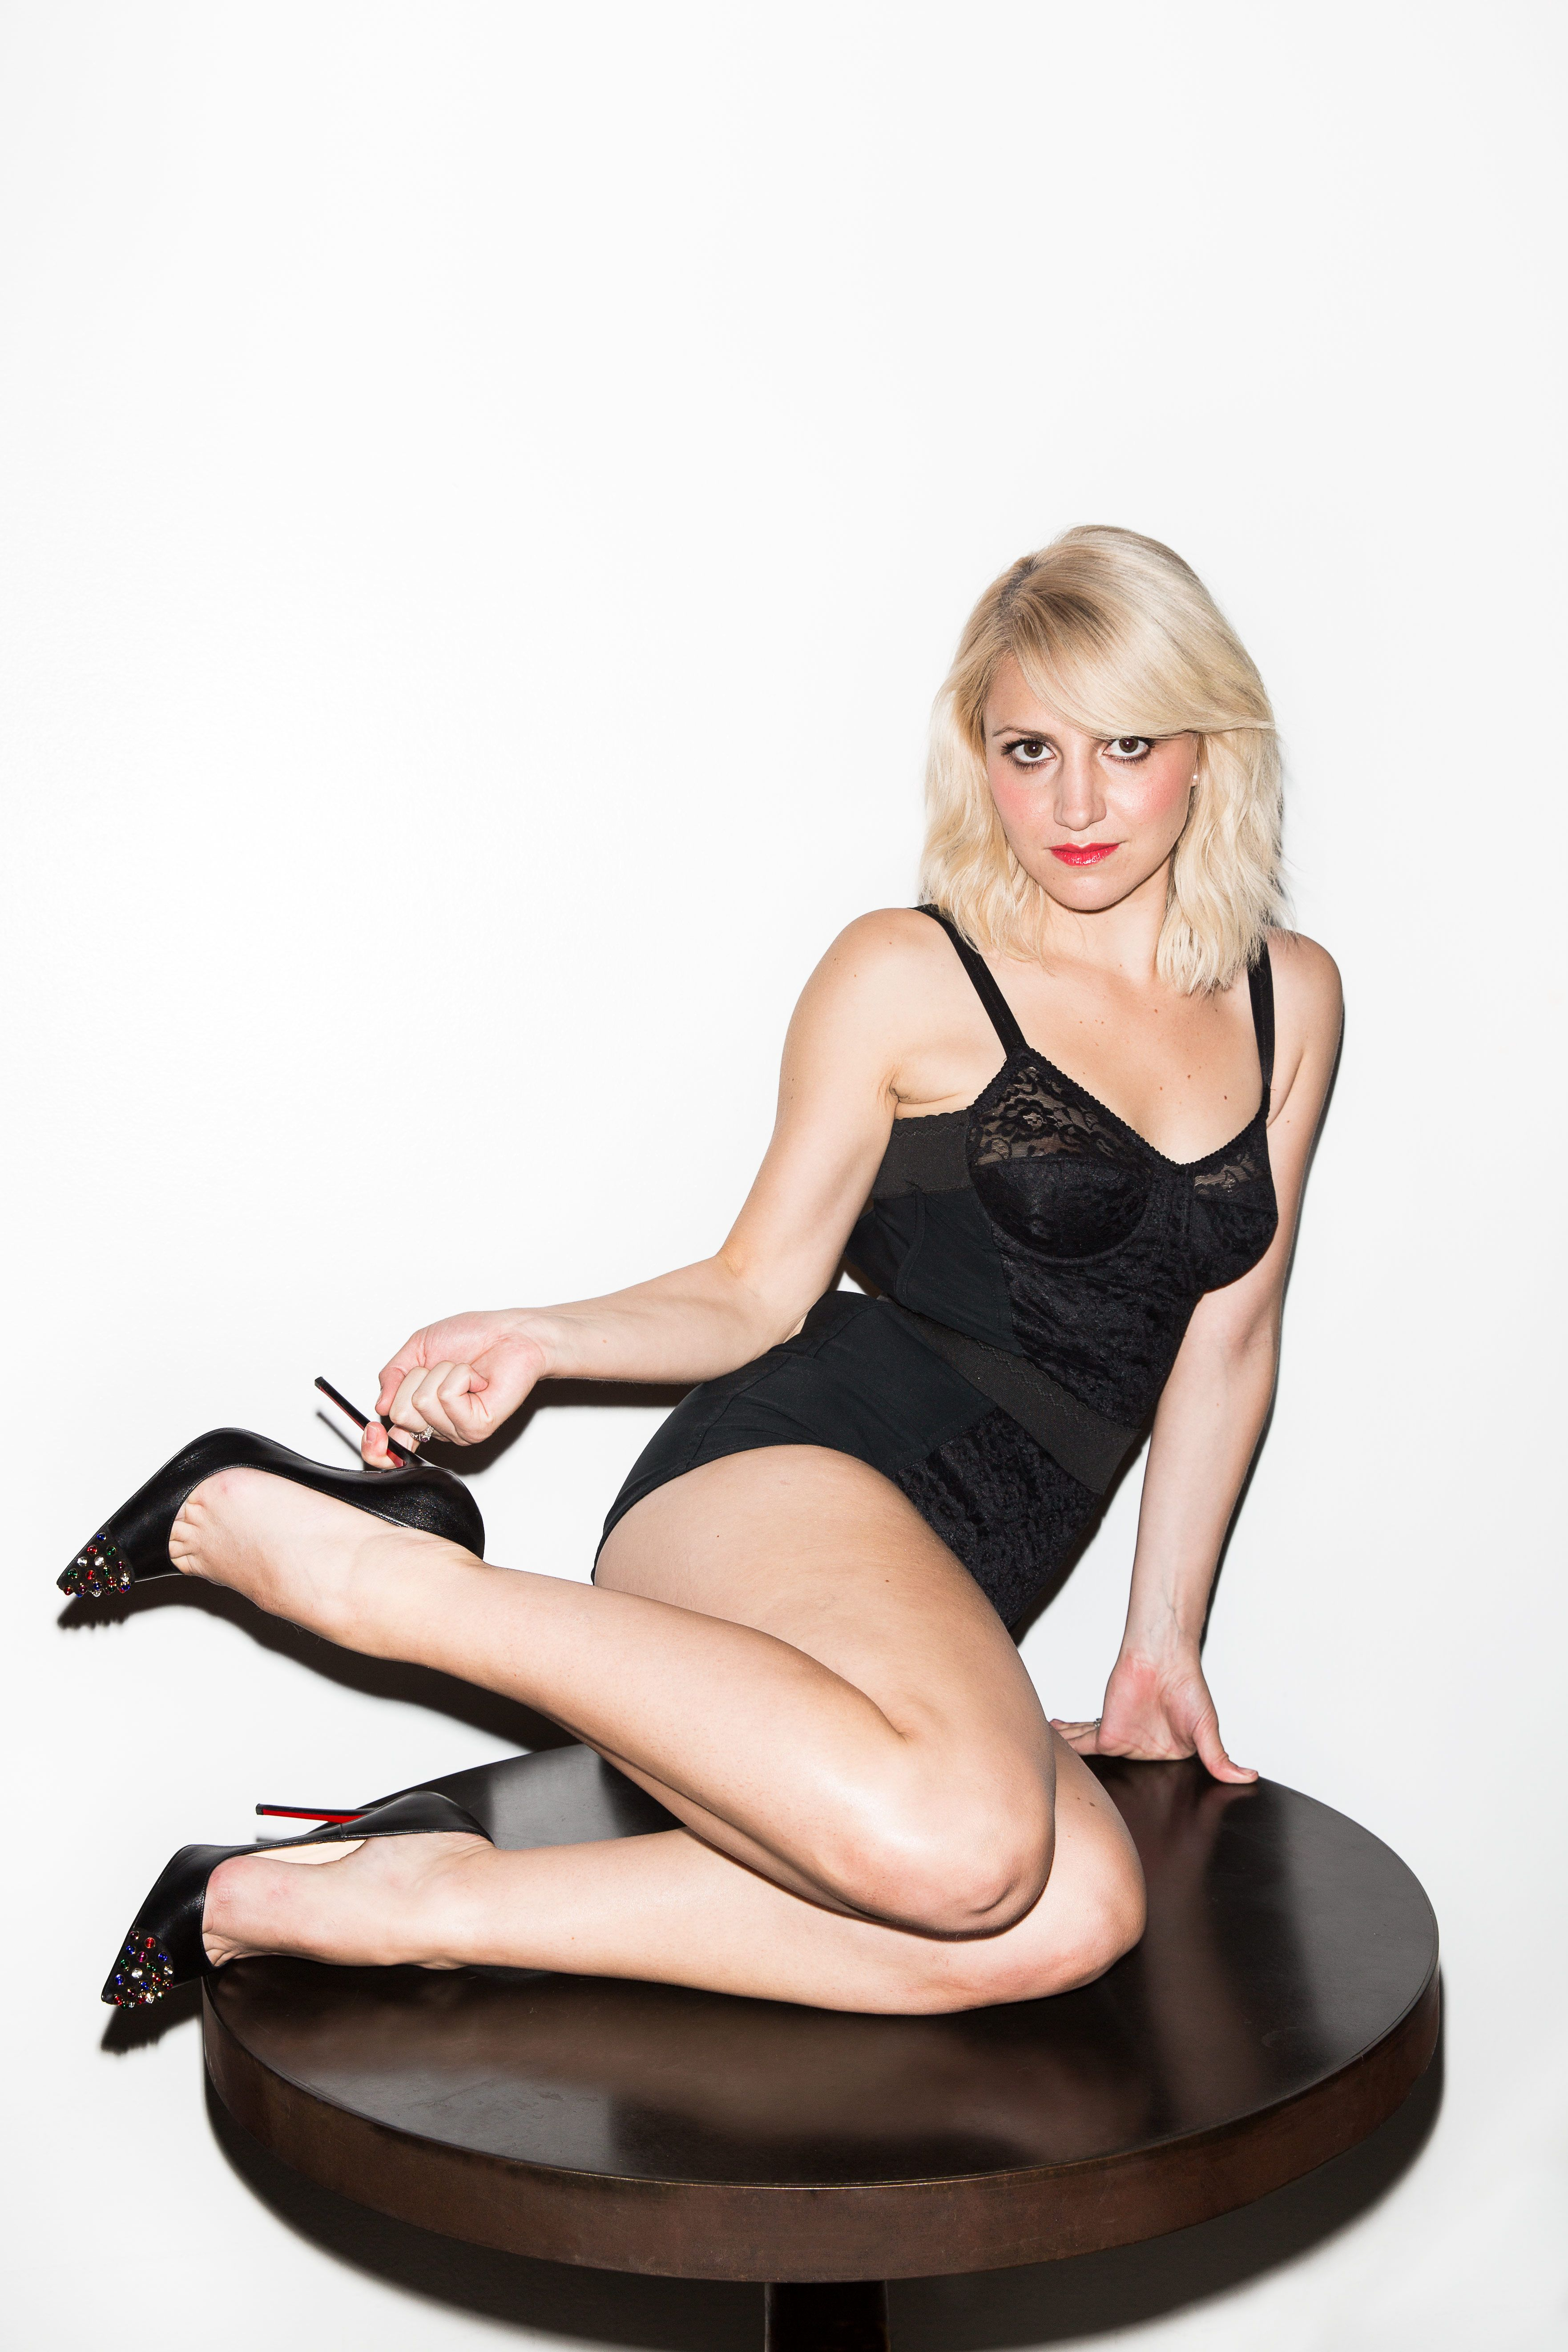 Sex Annaleigh Ashford nudes (97 photos), Tits, Is a cute, Feet, panties 2015